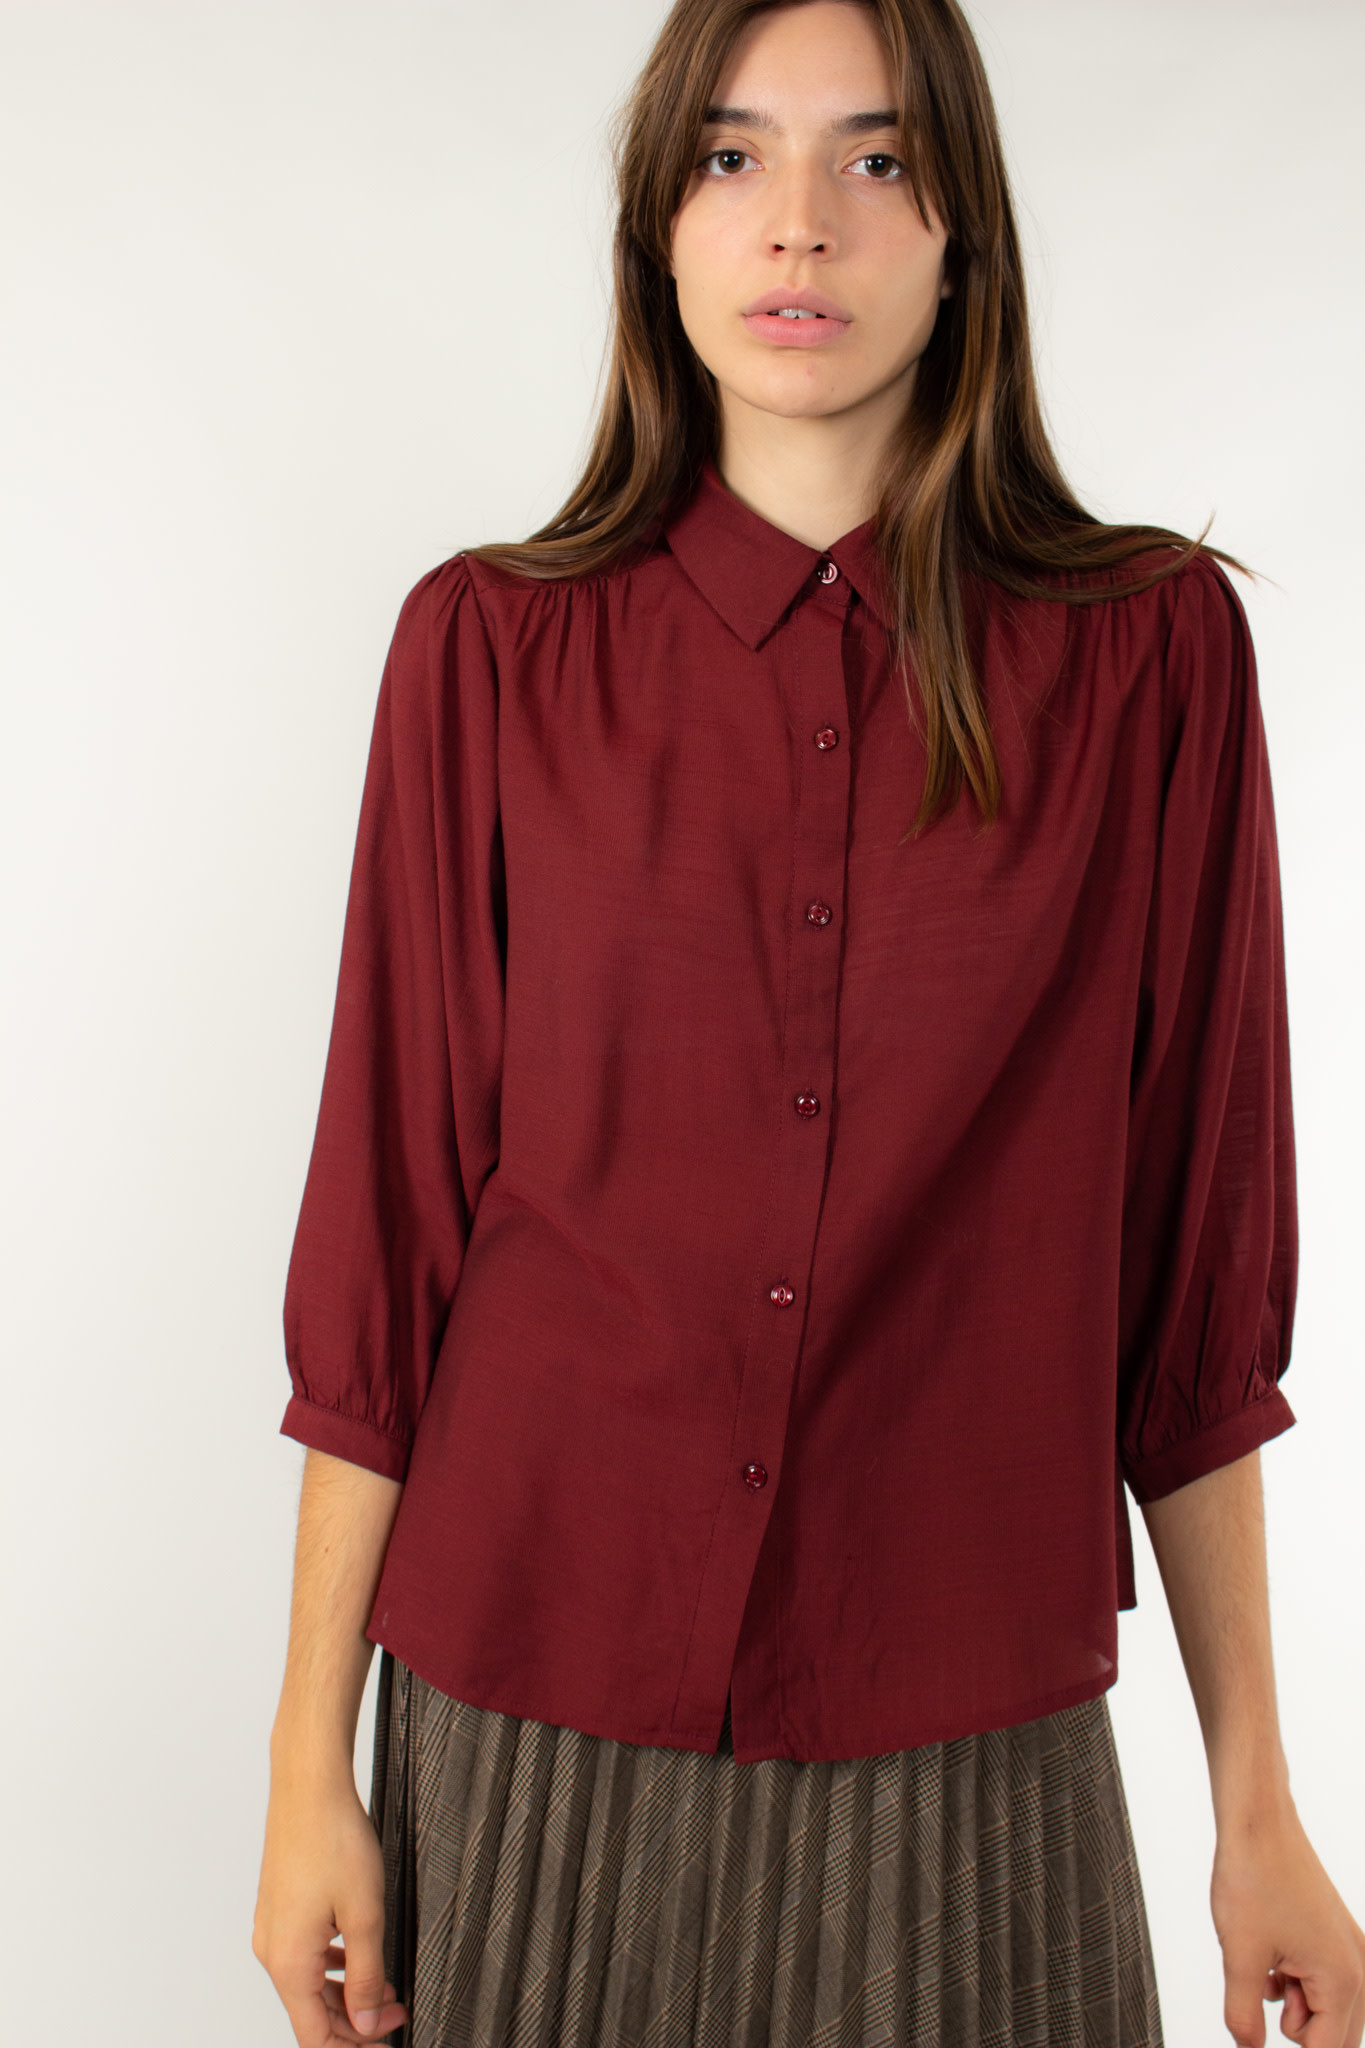 The Korner Blouse wine